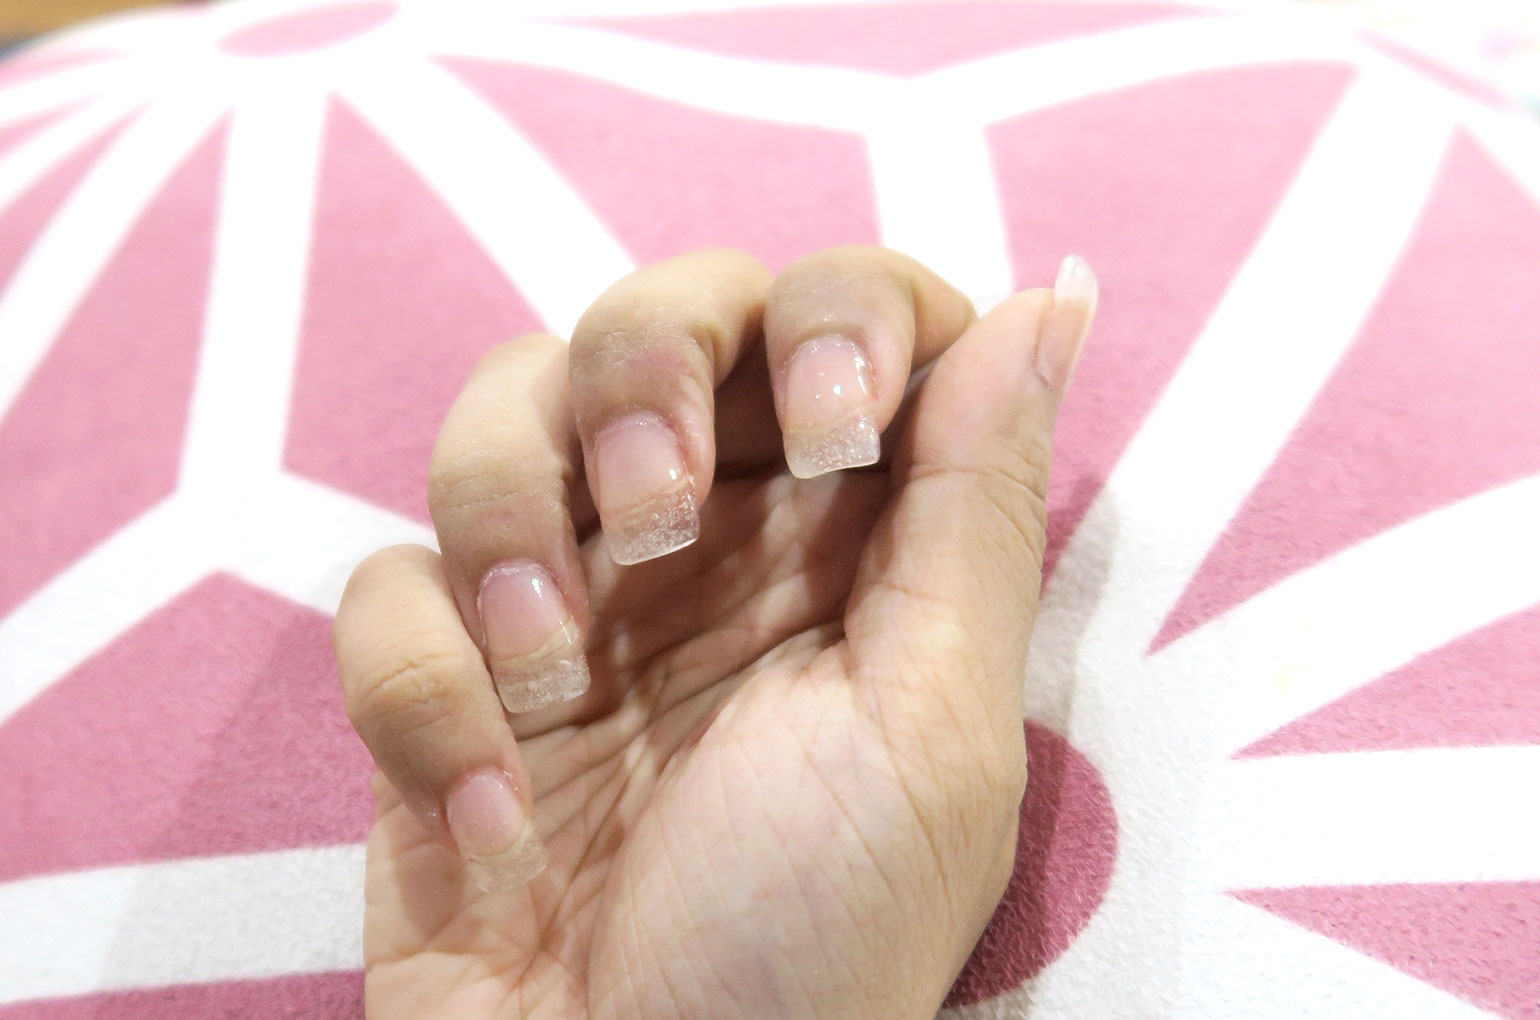 6 Acrylic Nails Review - Nail Art - Ayumi Las Piñas - Gen-zel.com(c)